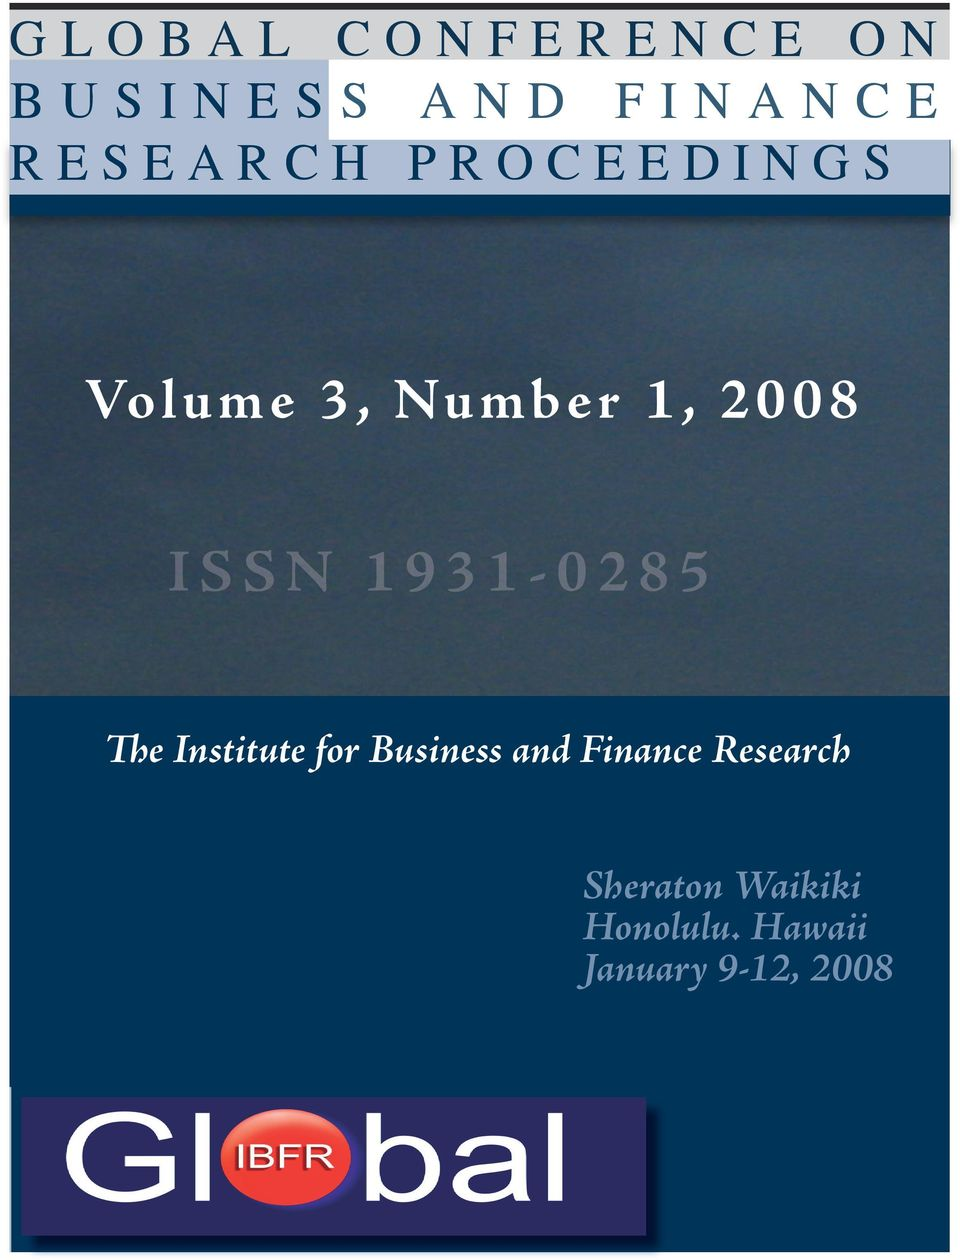 2 8 5 The Institute for Business and Finance Research The In stitute for